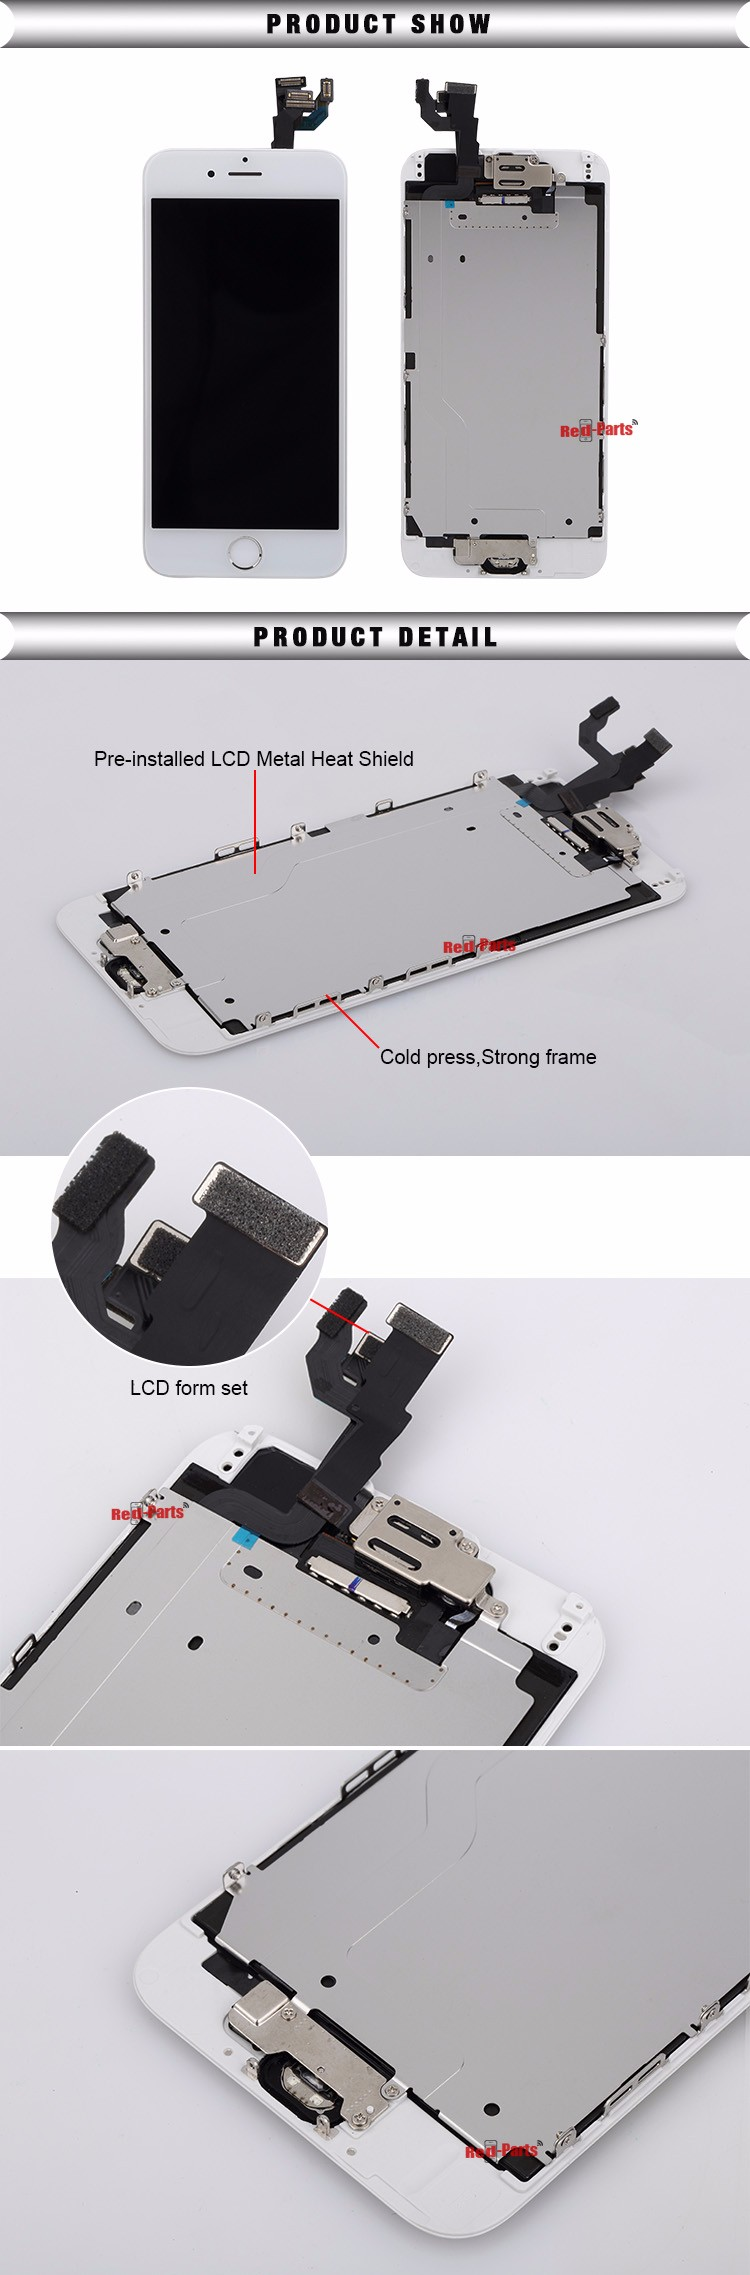 Original LCD For Iphone 6, For Iphone 6 LCD Touch Screen, Replacement Digitizer LCD Touch Screen For Iphone 6